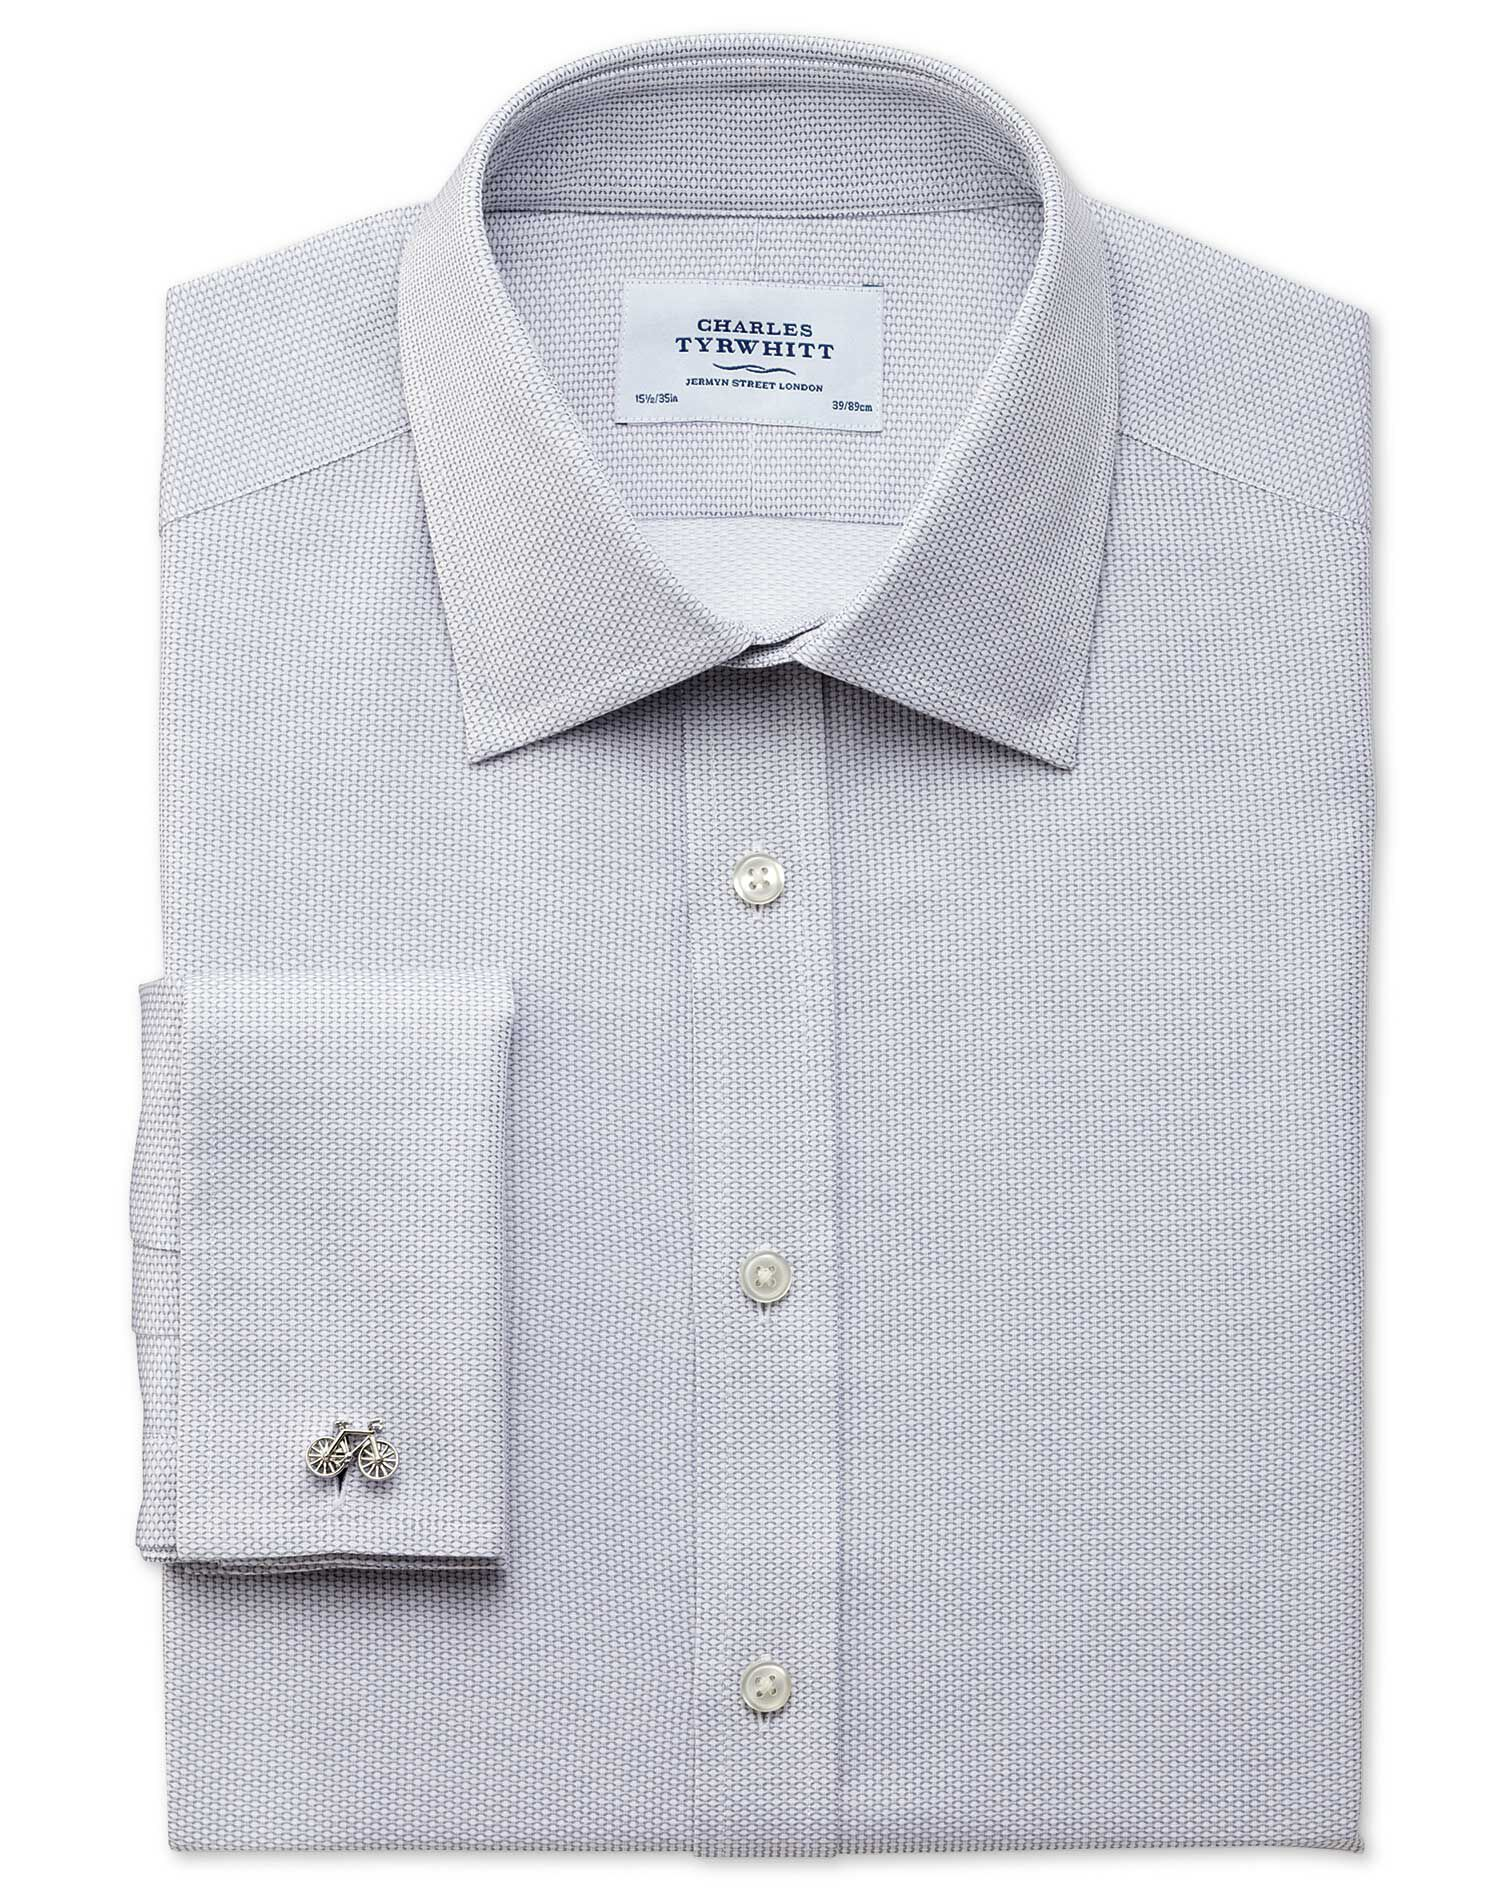 Charles Tyrwhitt Slim Fit Egyptian Cotton Diamond Texture Light Grey Formal Shirt Size 17.5/36